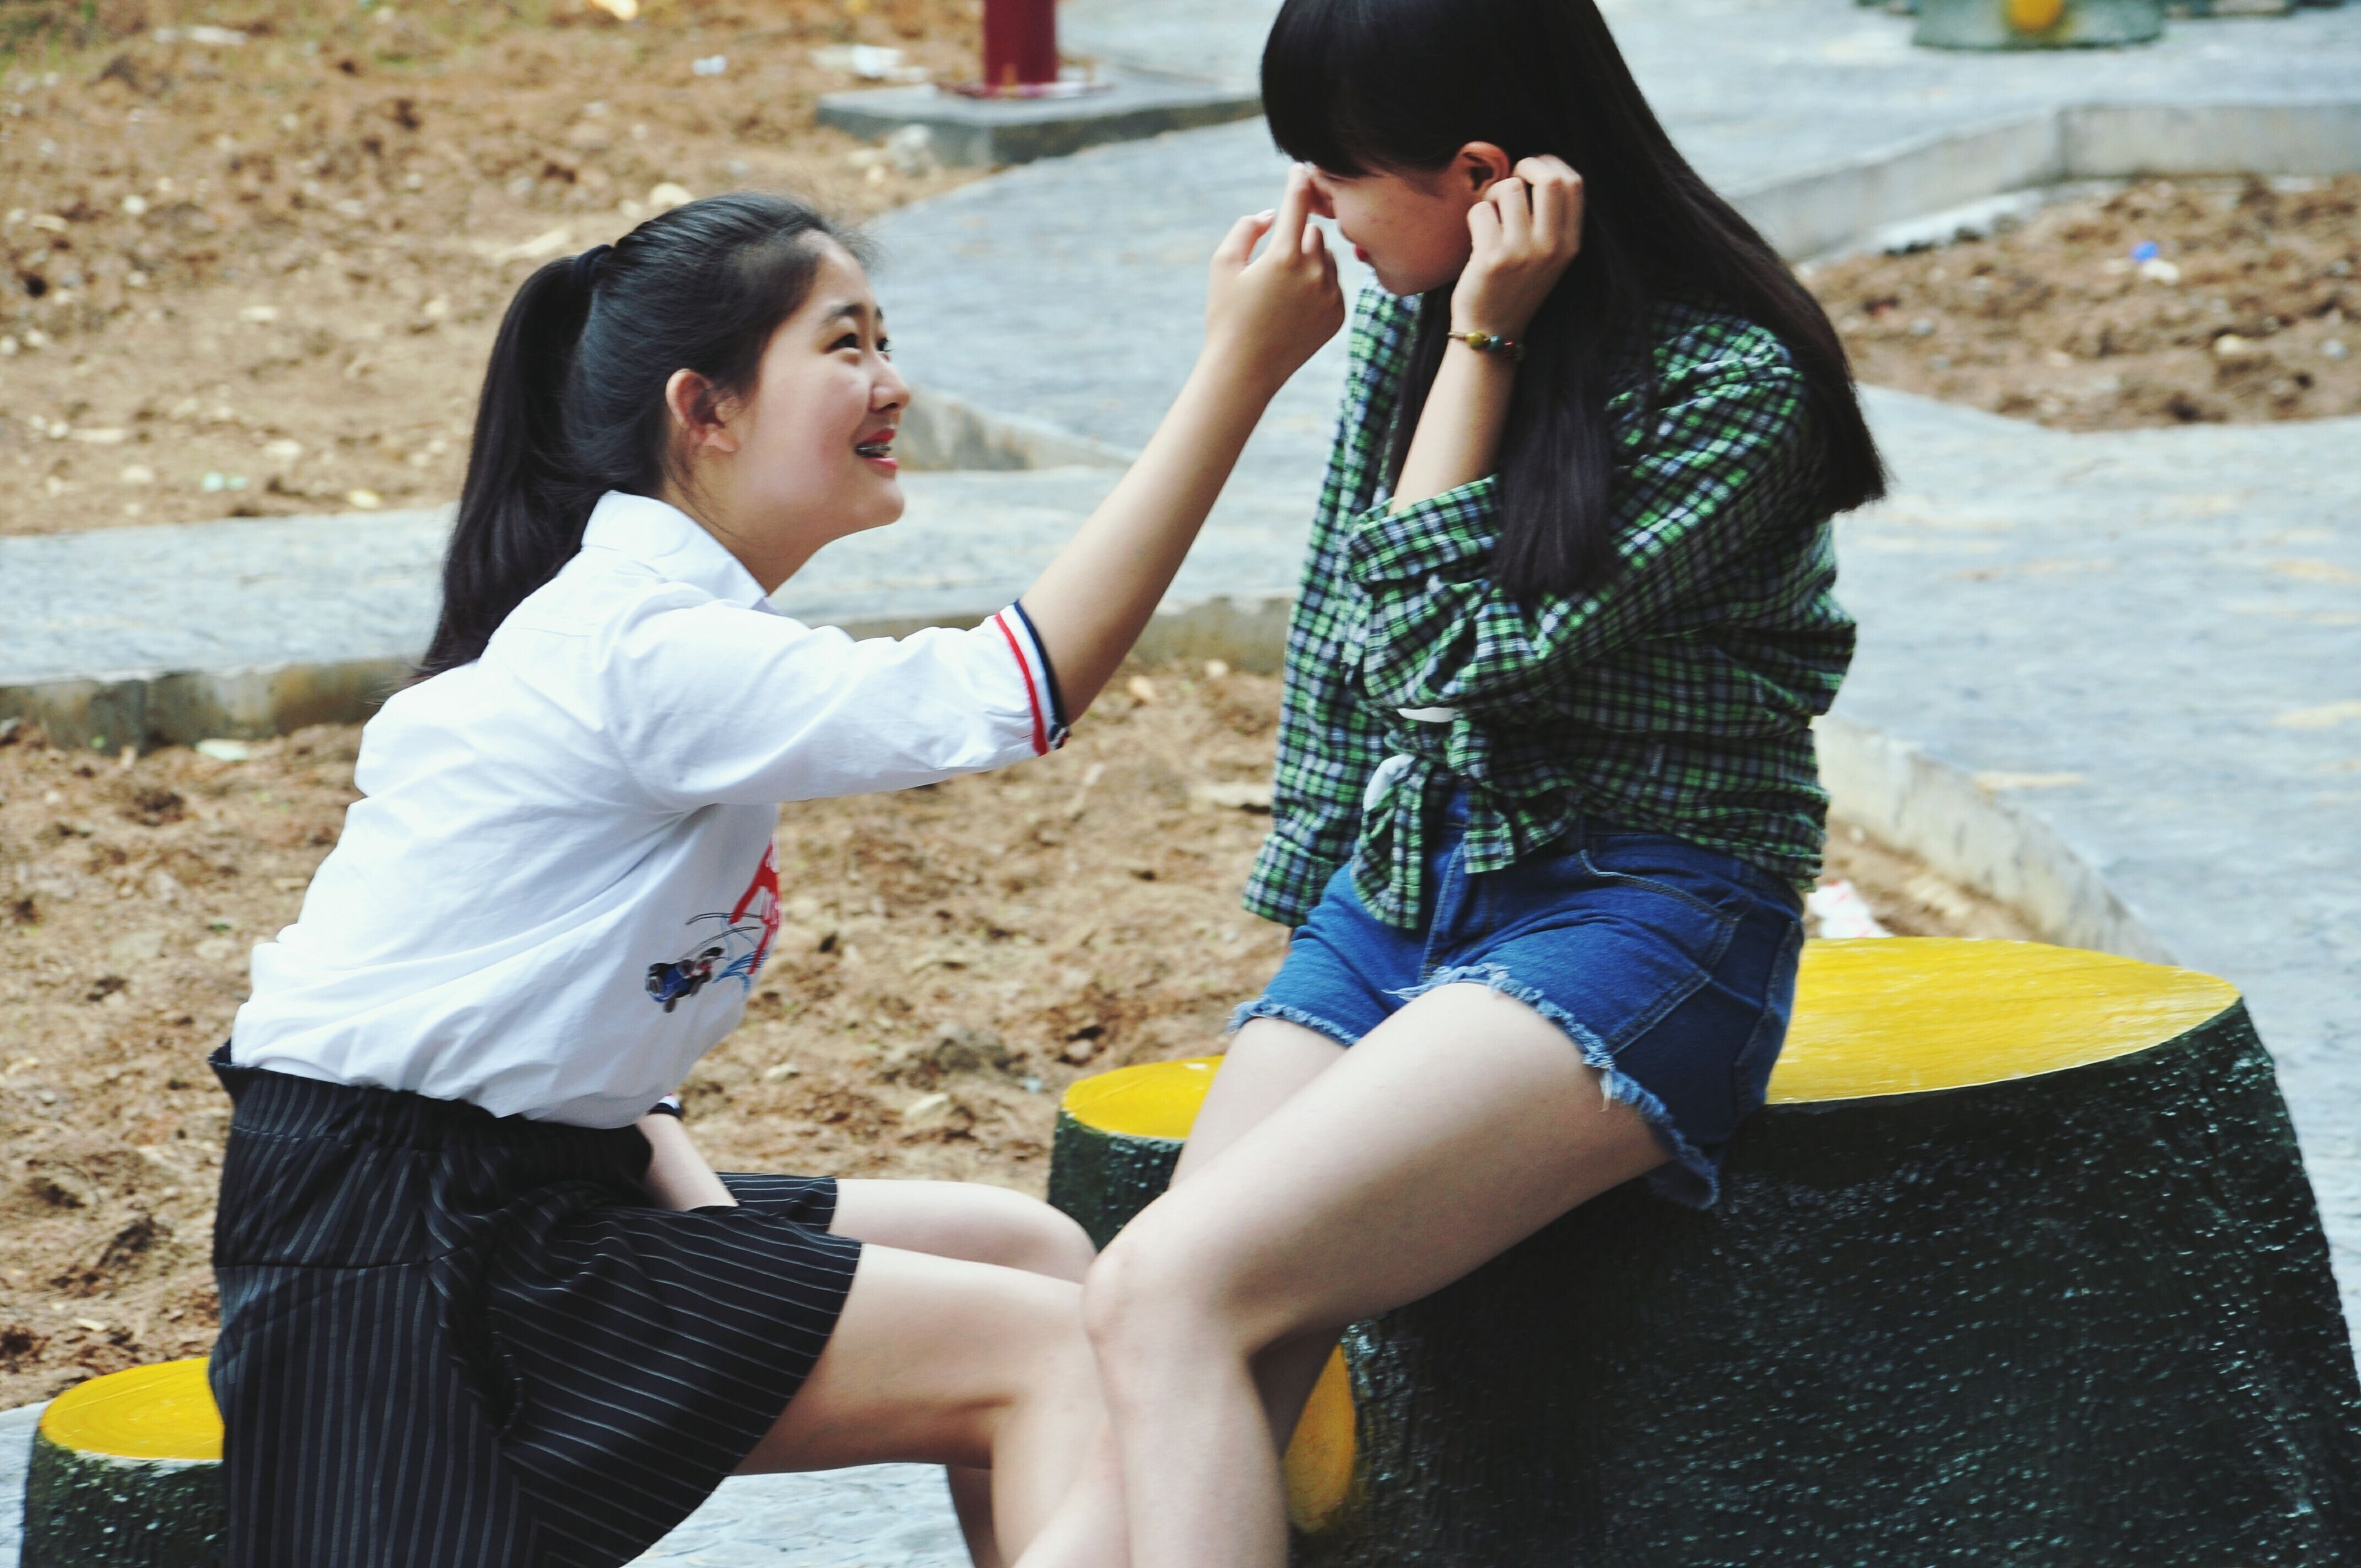 two people, real people, childhood, girls, outdoors, togetherness, leisure activity, casual clothing, day, love, side view, elementary age, lifestyles, bonding, young women, sunlight, sitting, happiness, boys, young adult, human hand